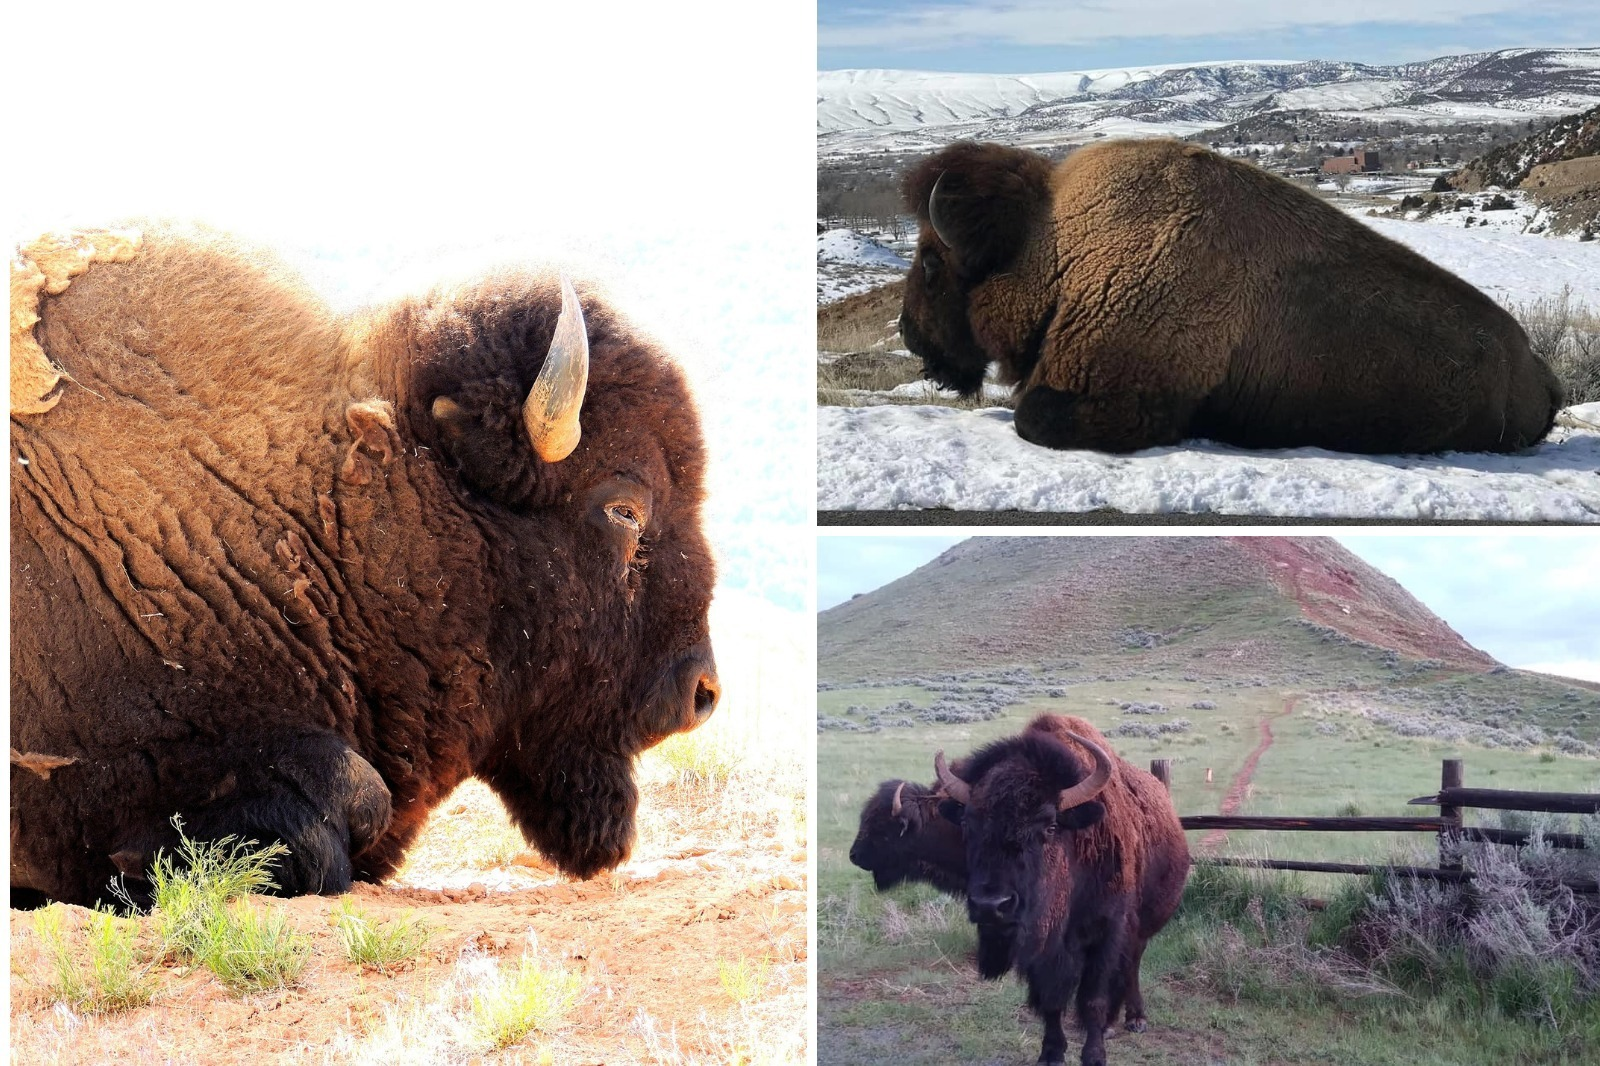 Three images of bison in Thermopolis, Hot Springs County, Wyoming